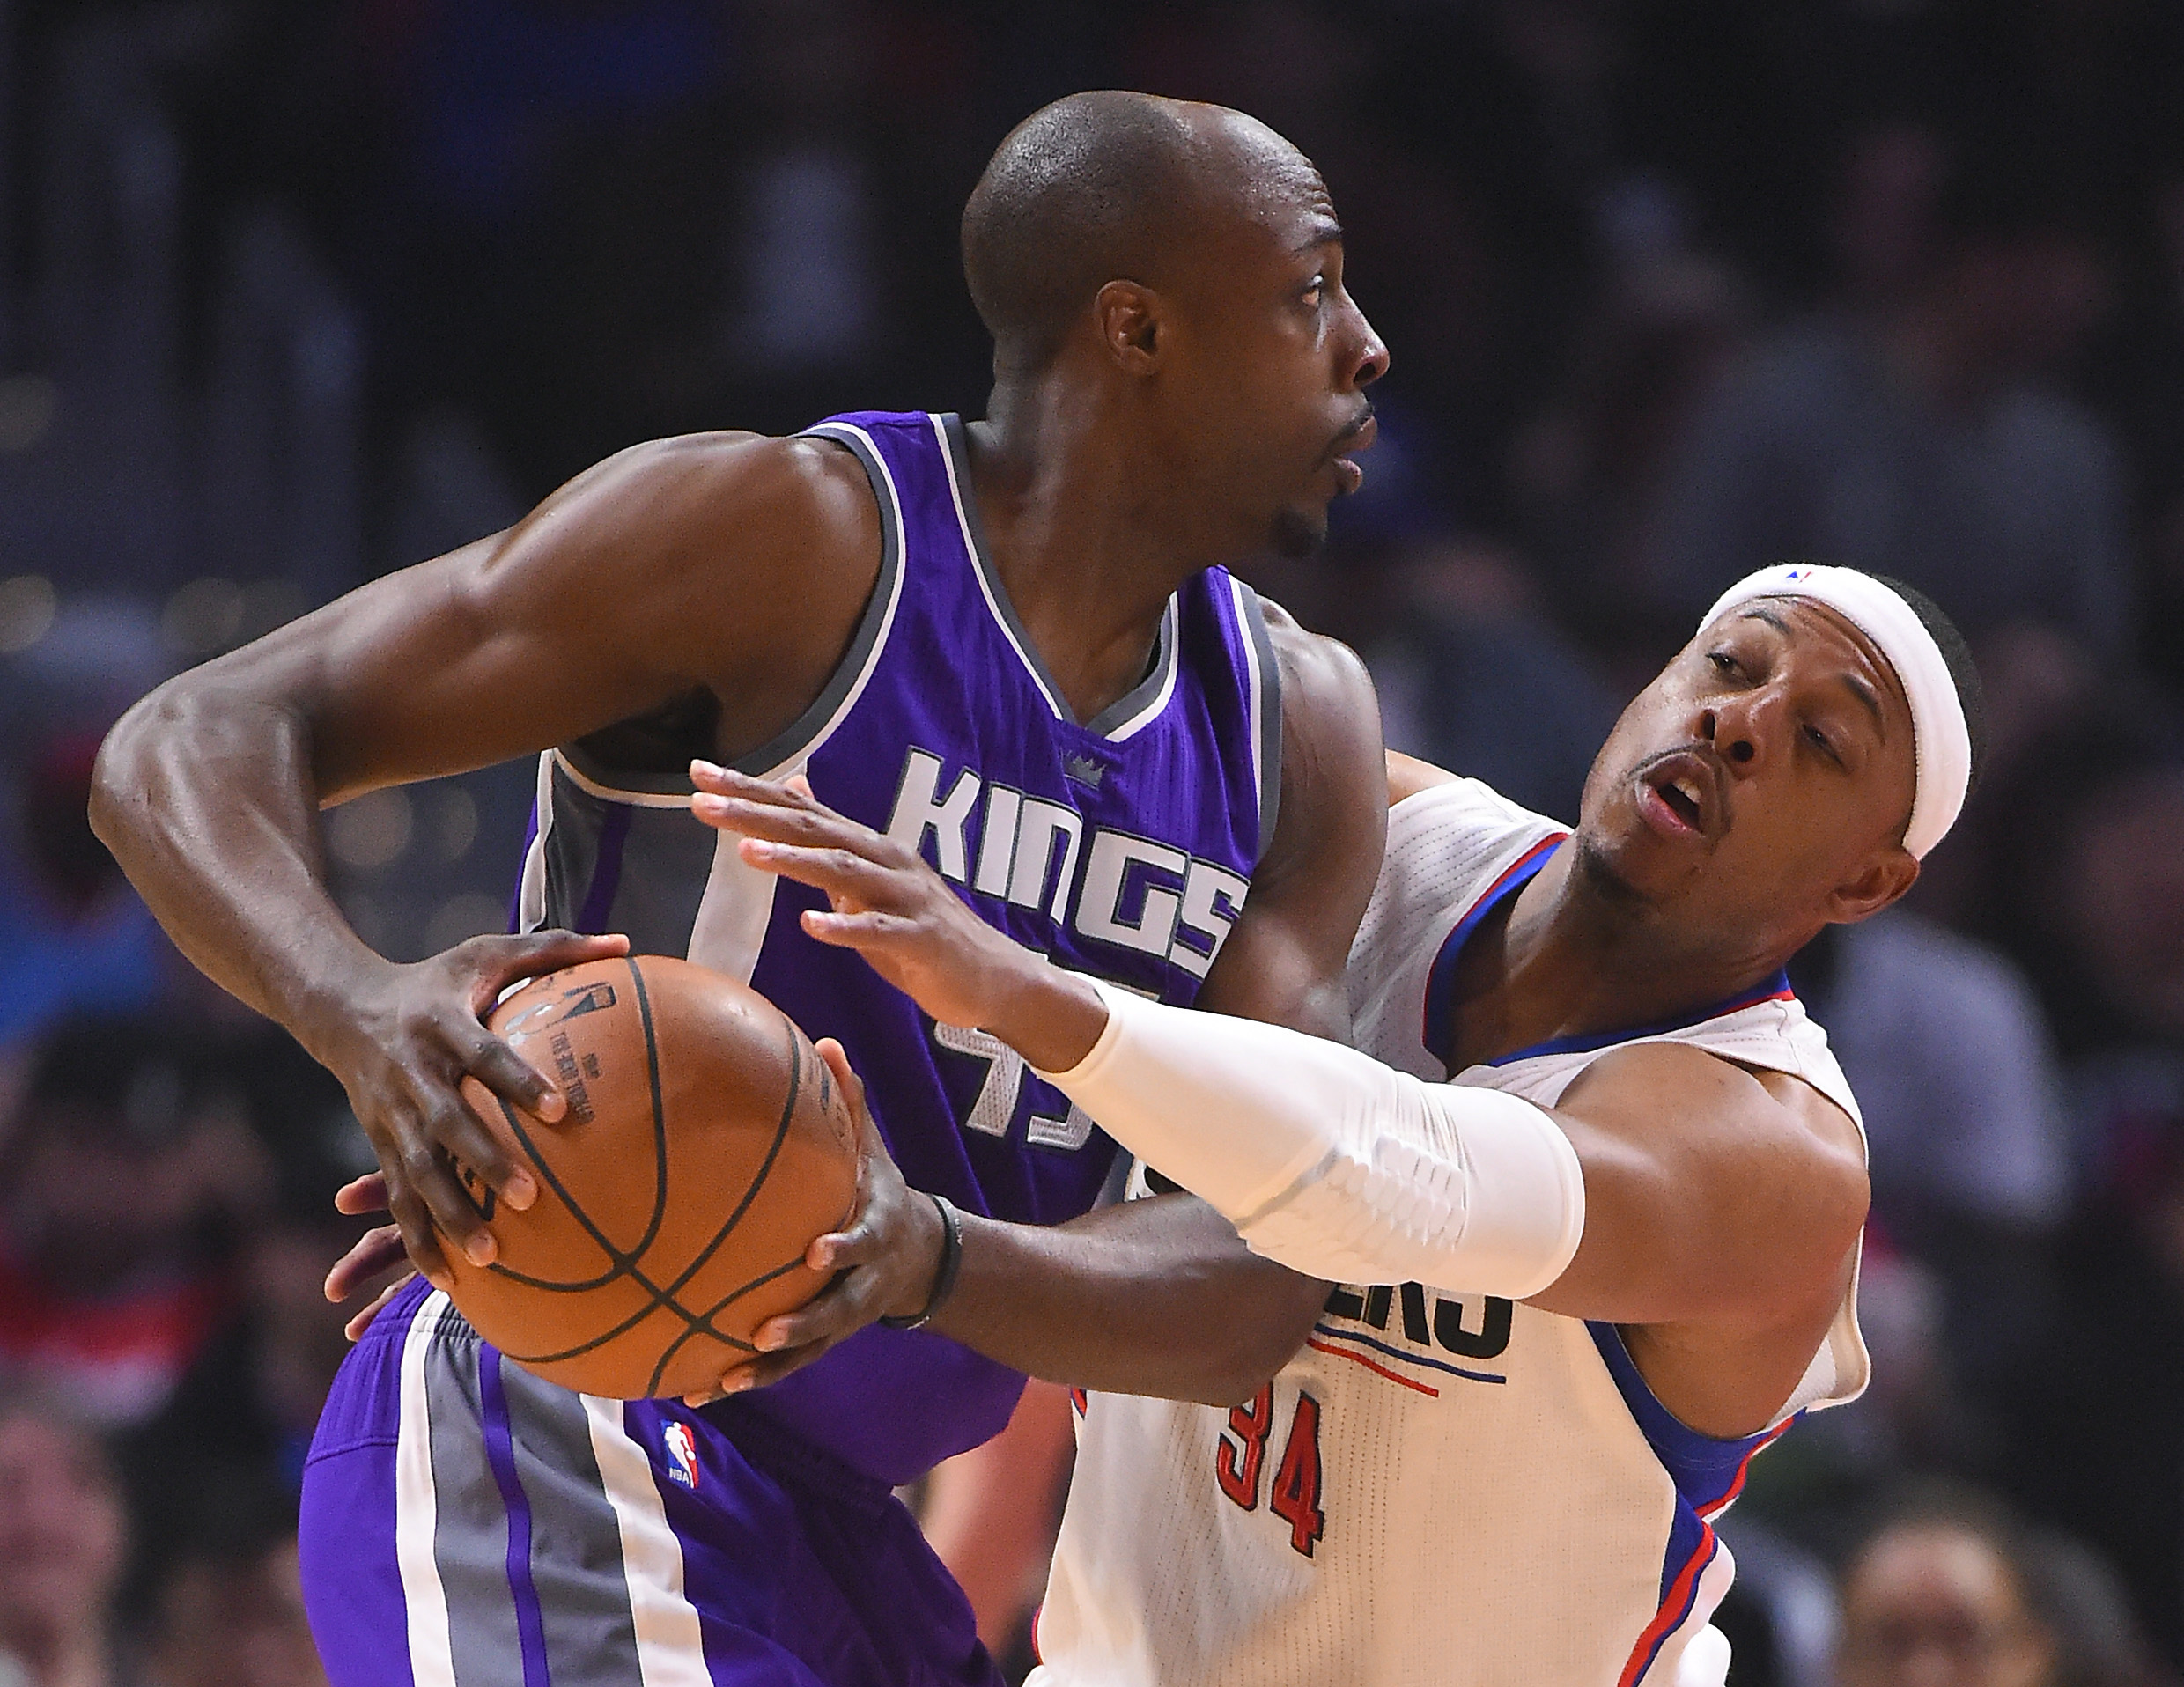 9972105-nba-sacramento-kings-at-los-angeles-clippers